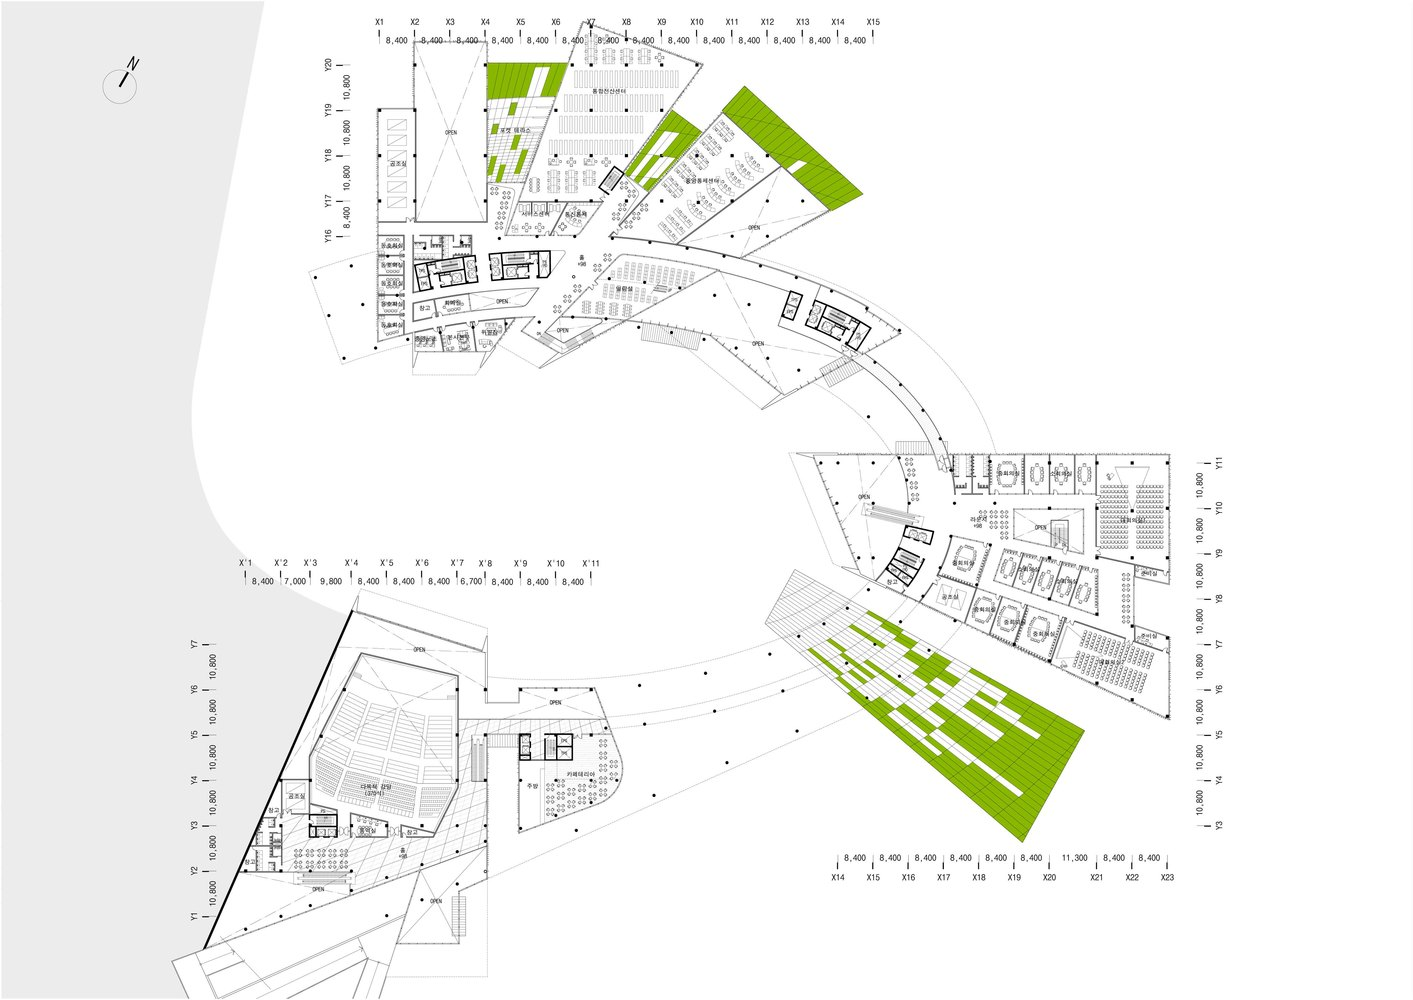 Gallery Of New Korea Hydro Nuclear Power Headquarters H Plant Circuit Diagram Architectureplan 03